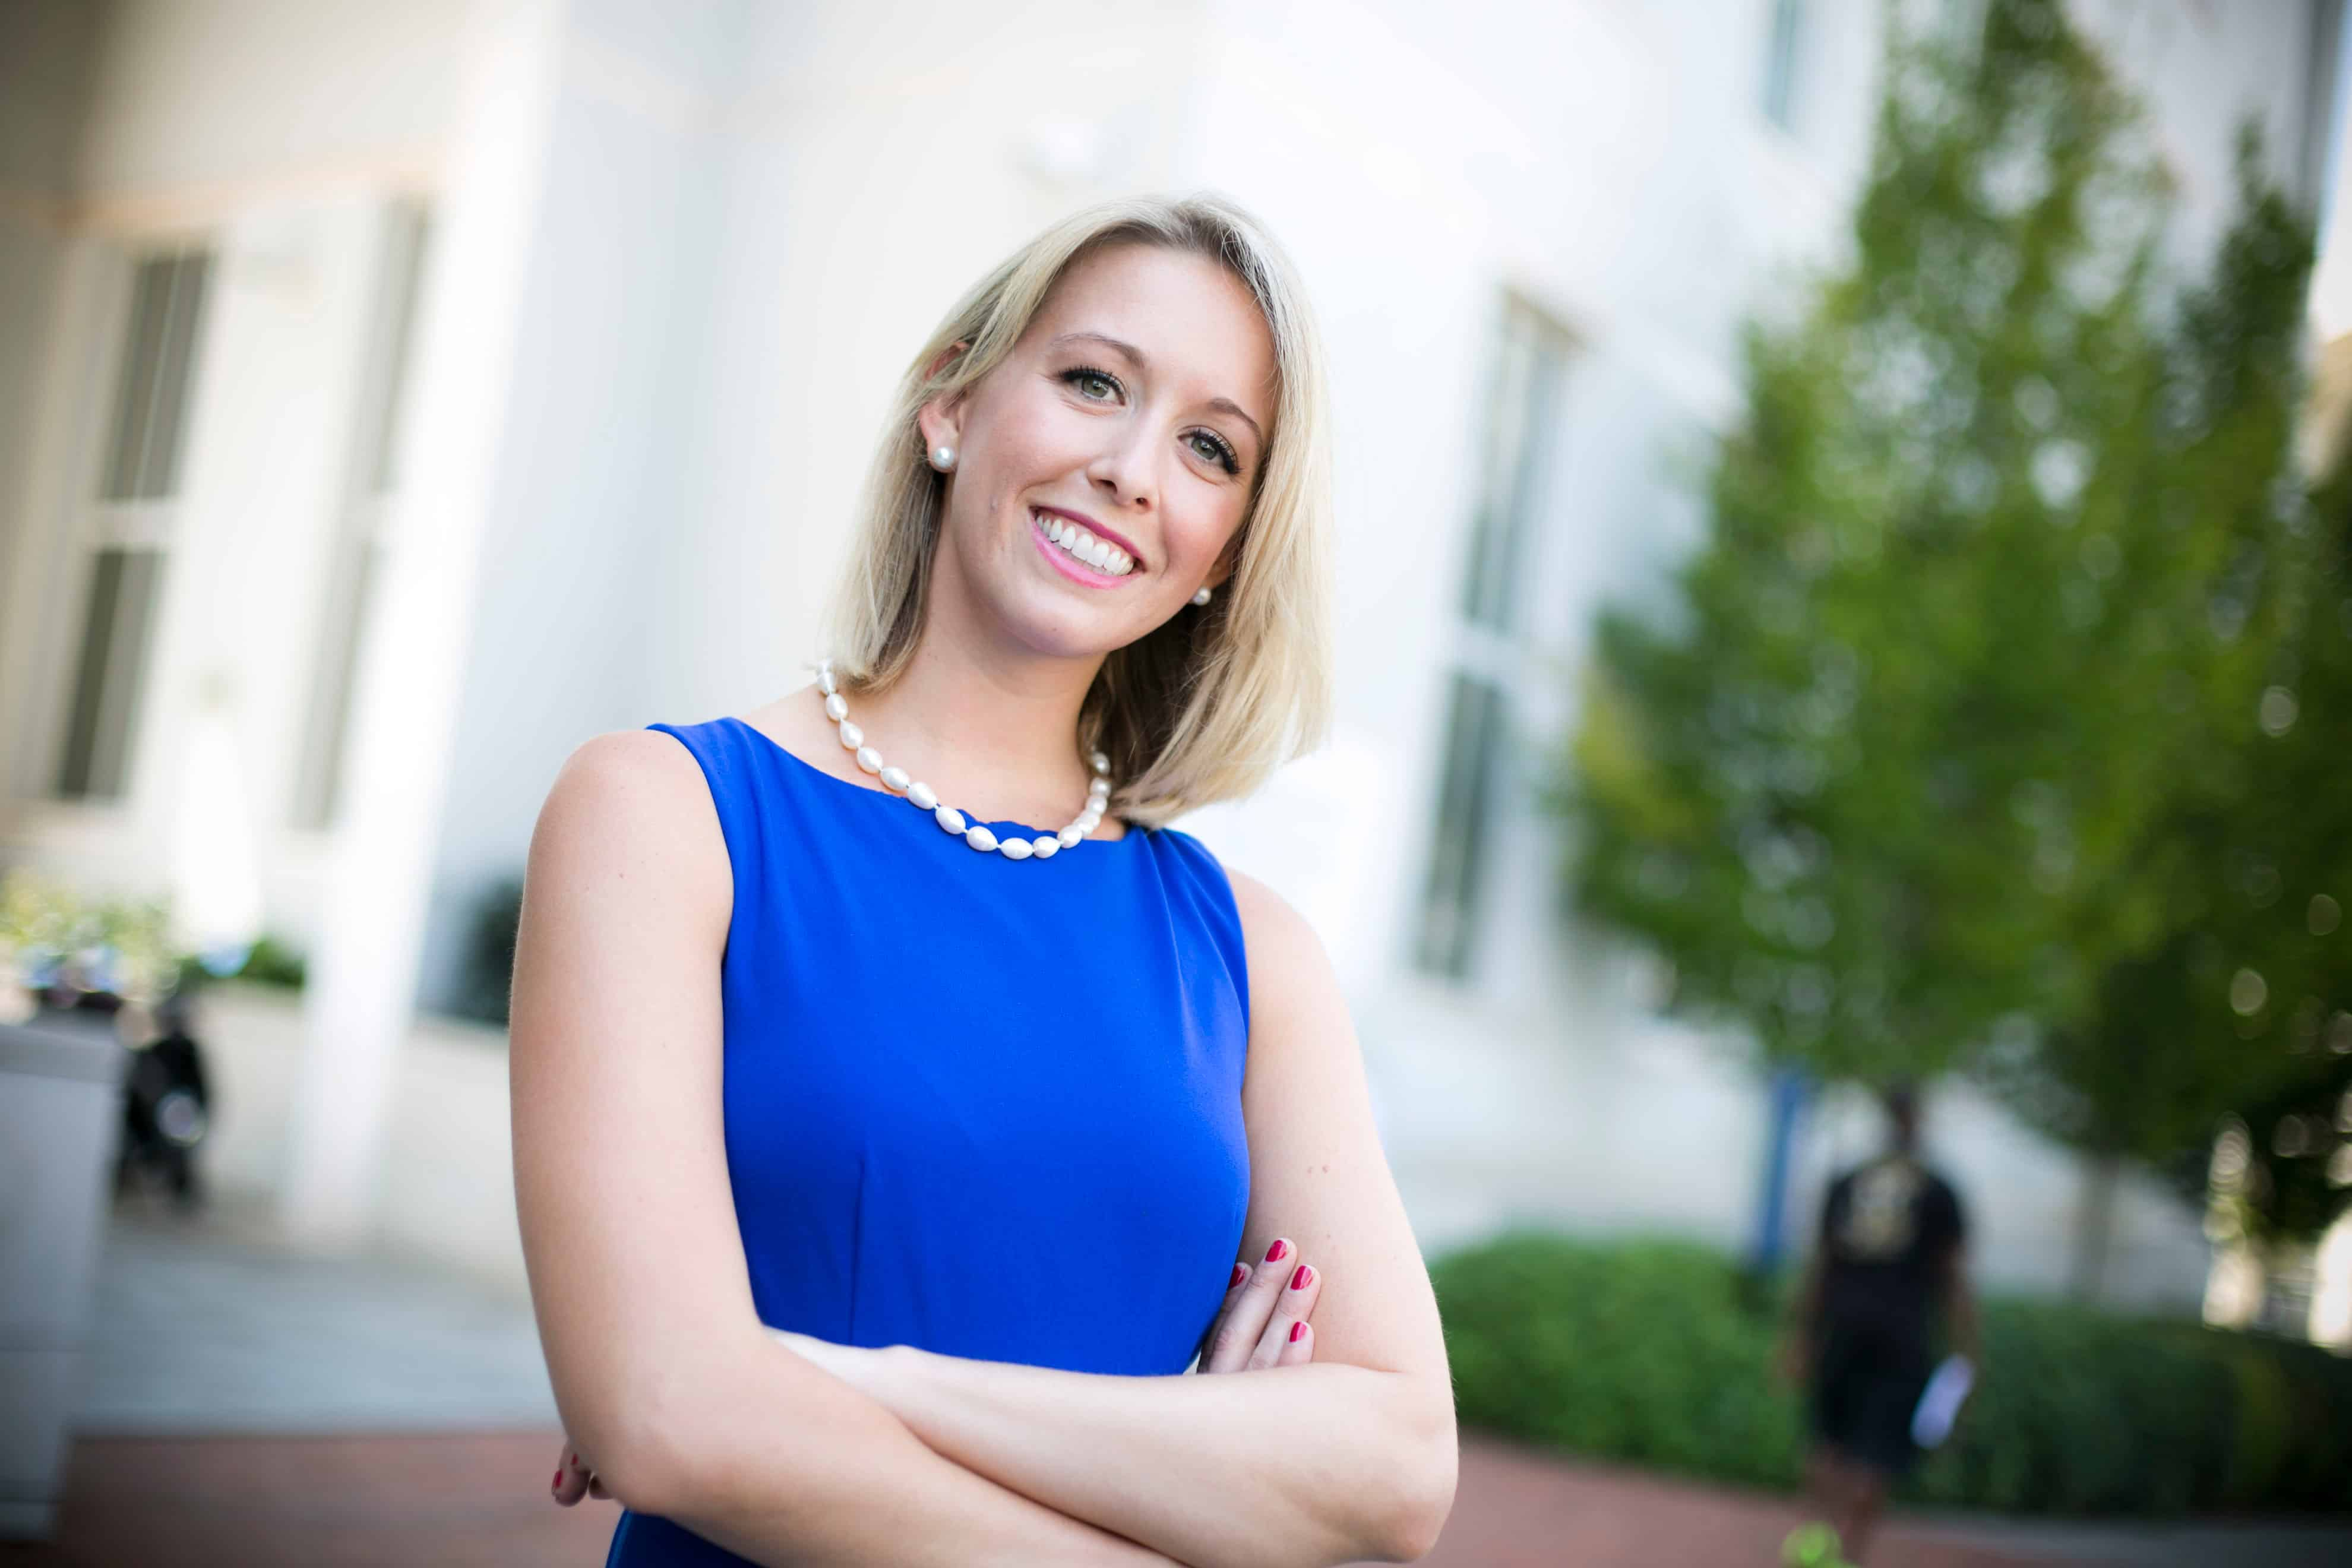 TWO-YEAR MBA PROFILE FEATURING KATIE HULL - Life at ...